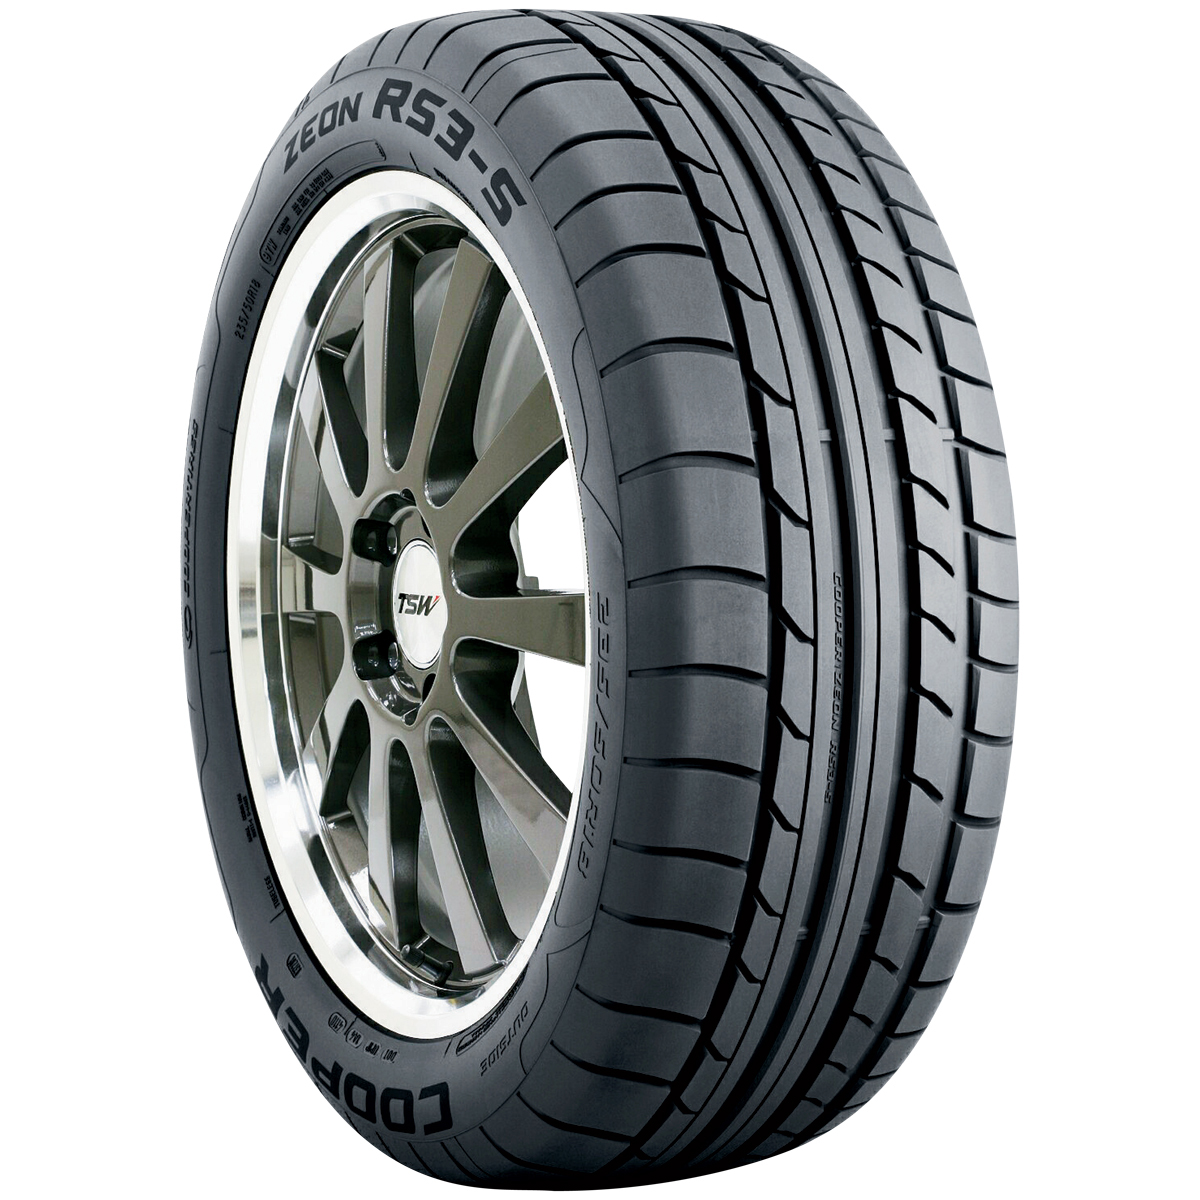 Cooper Tires Zeon RS3-S Passenger All Season Tire - P325/30R19XL 105Y